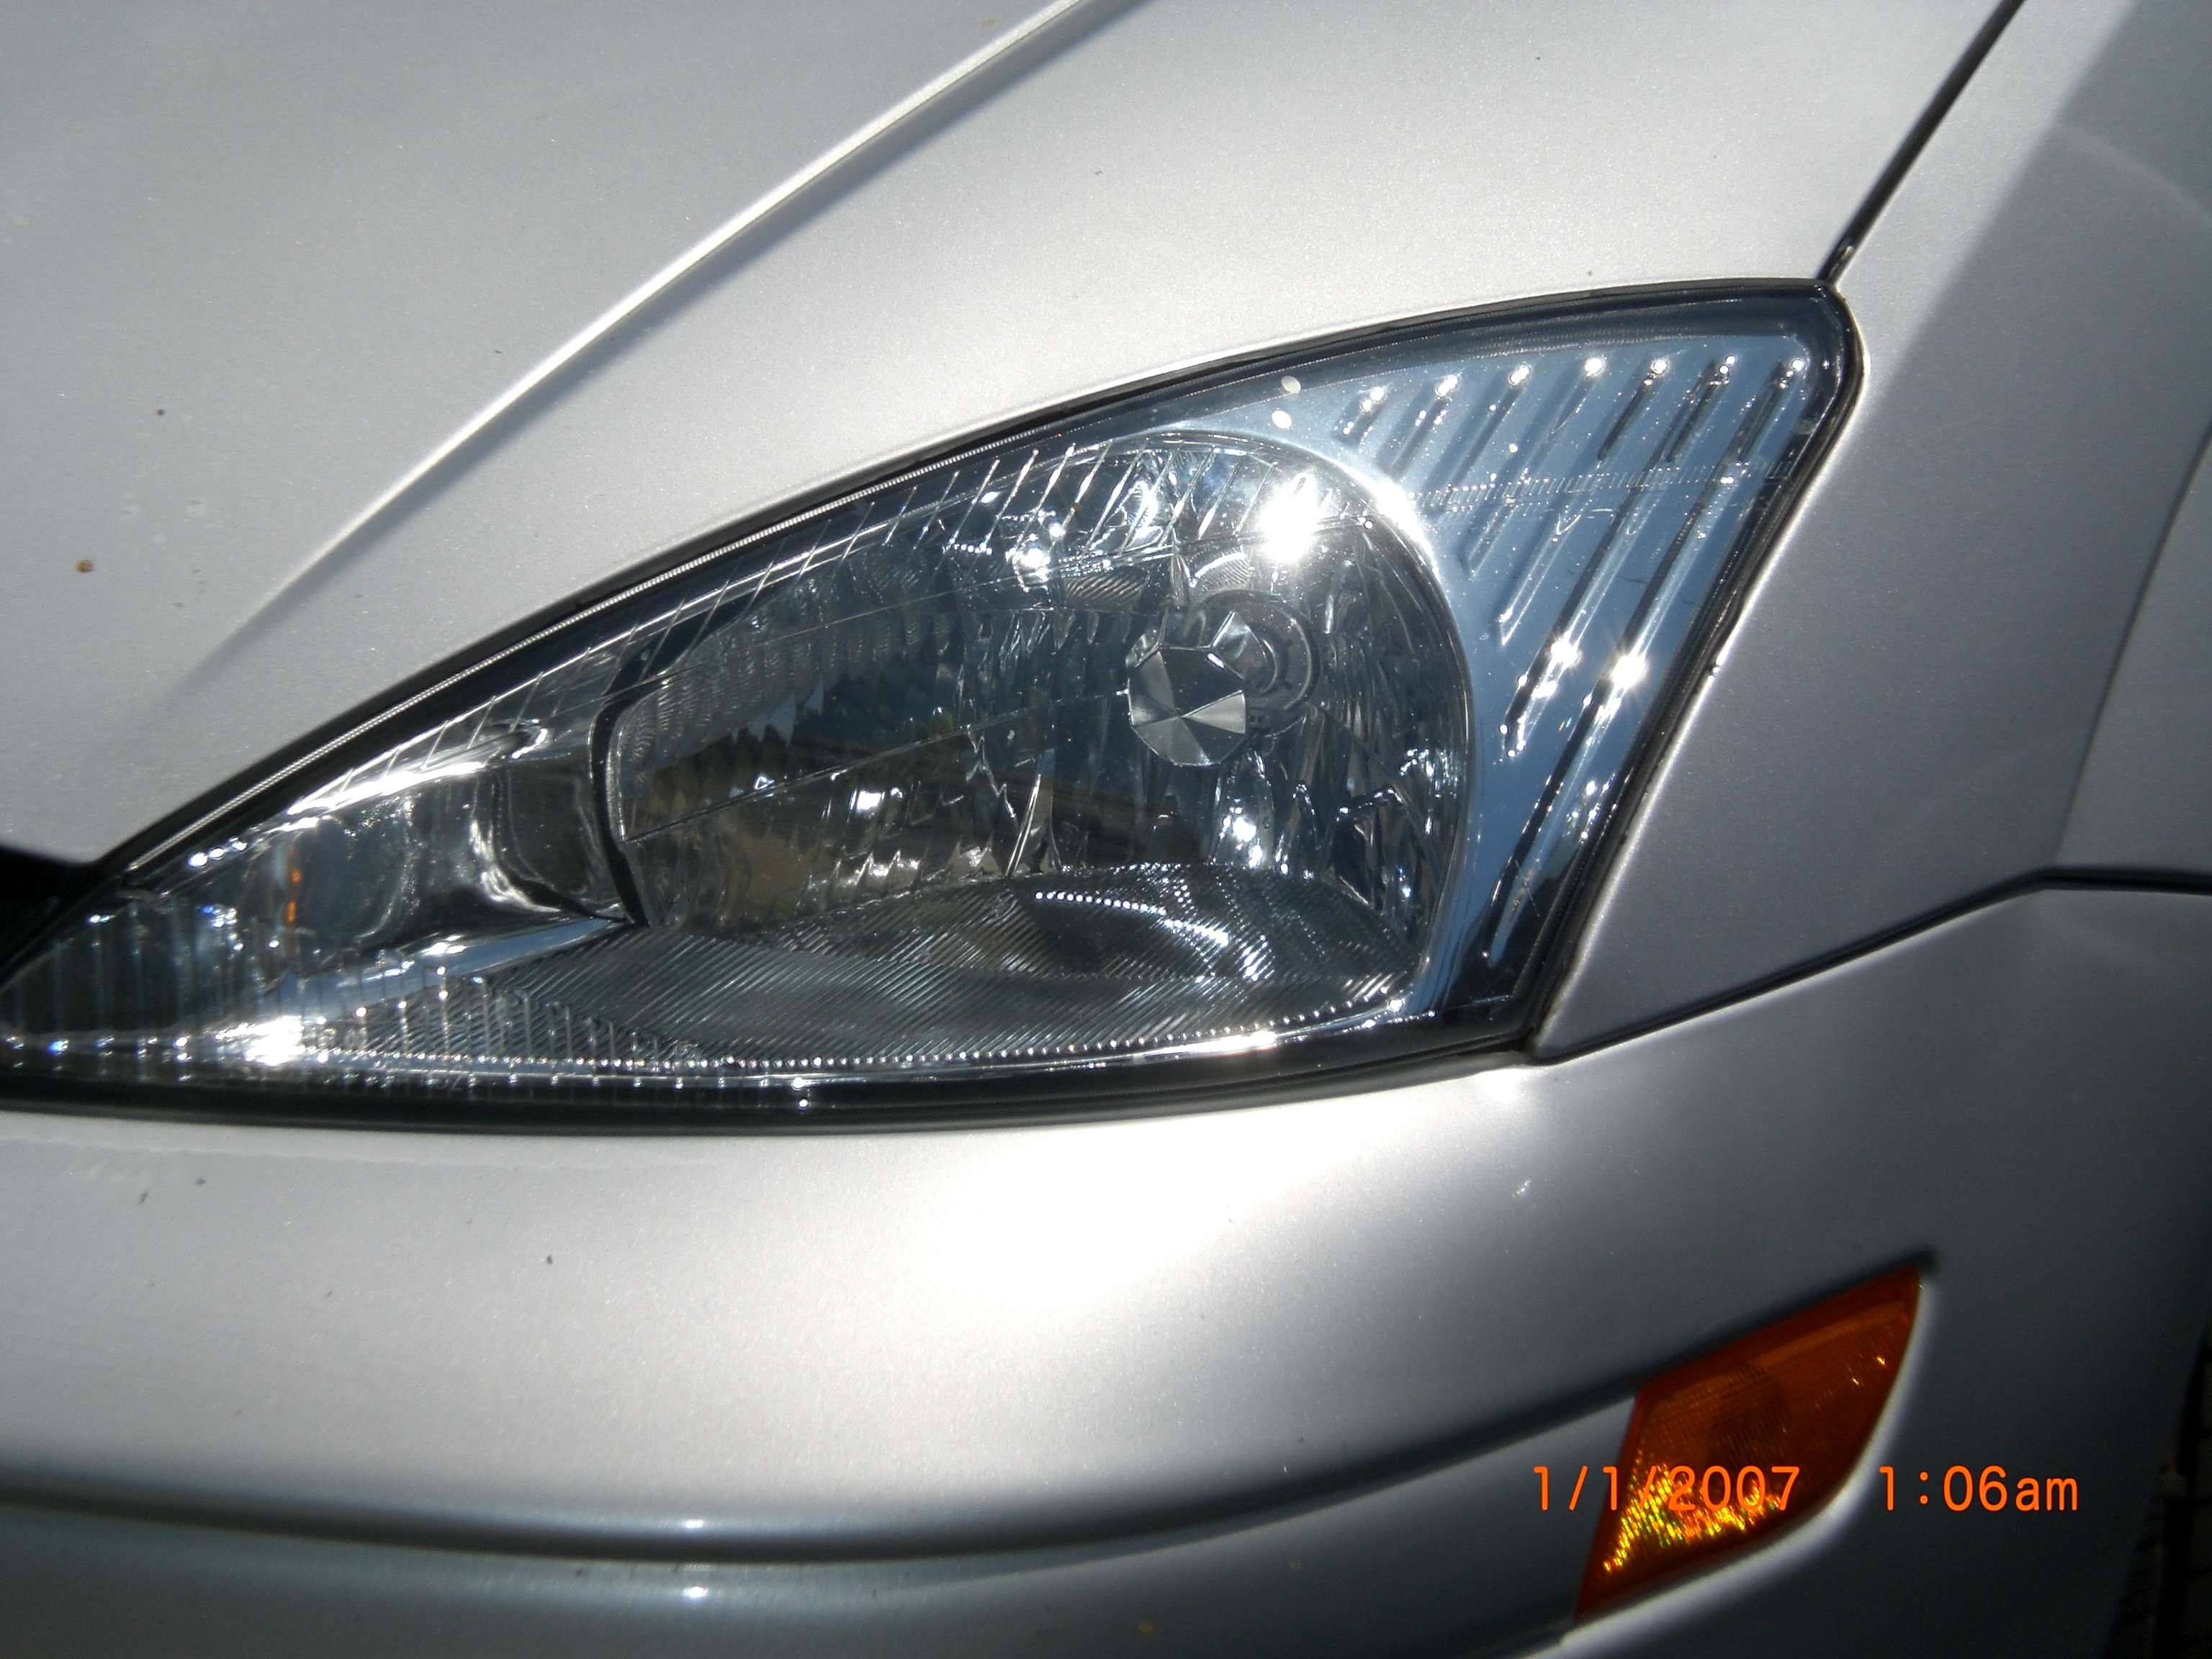 AUTOLAMPS-R-US OR HEADLAMP4LESS